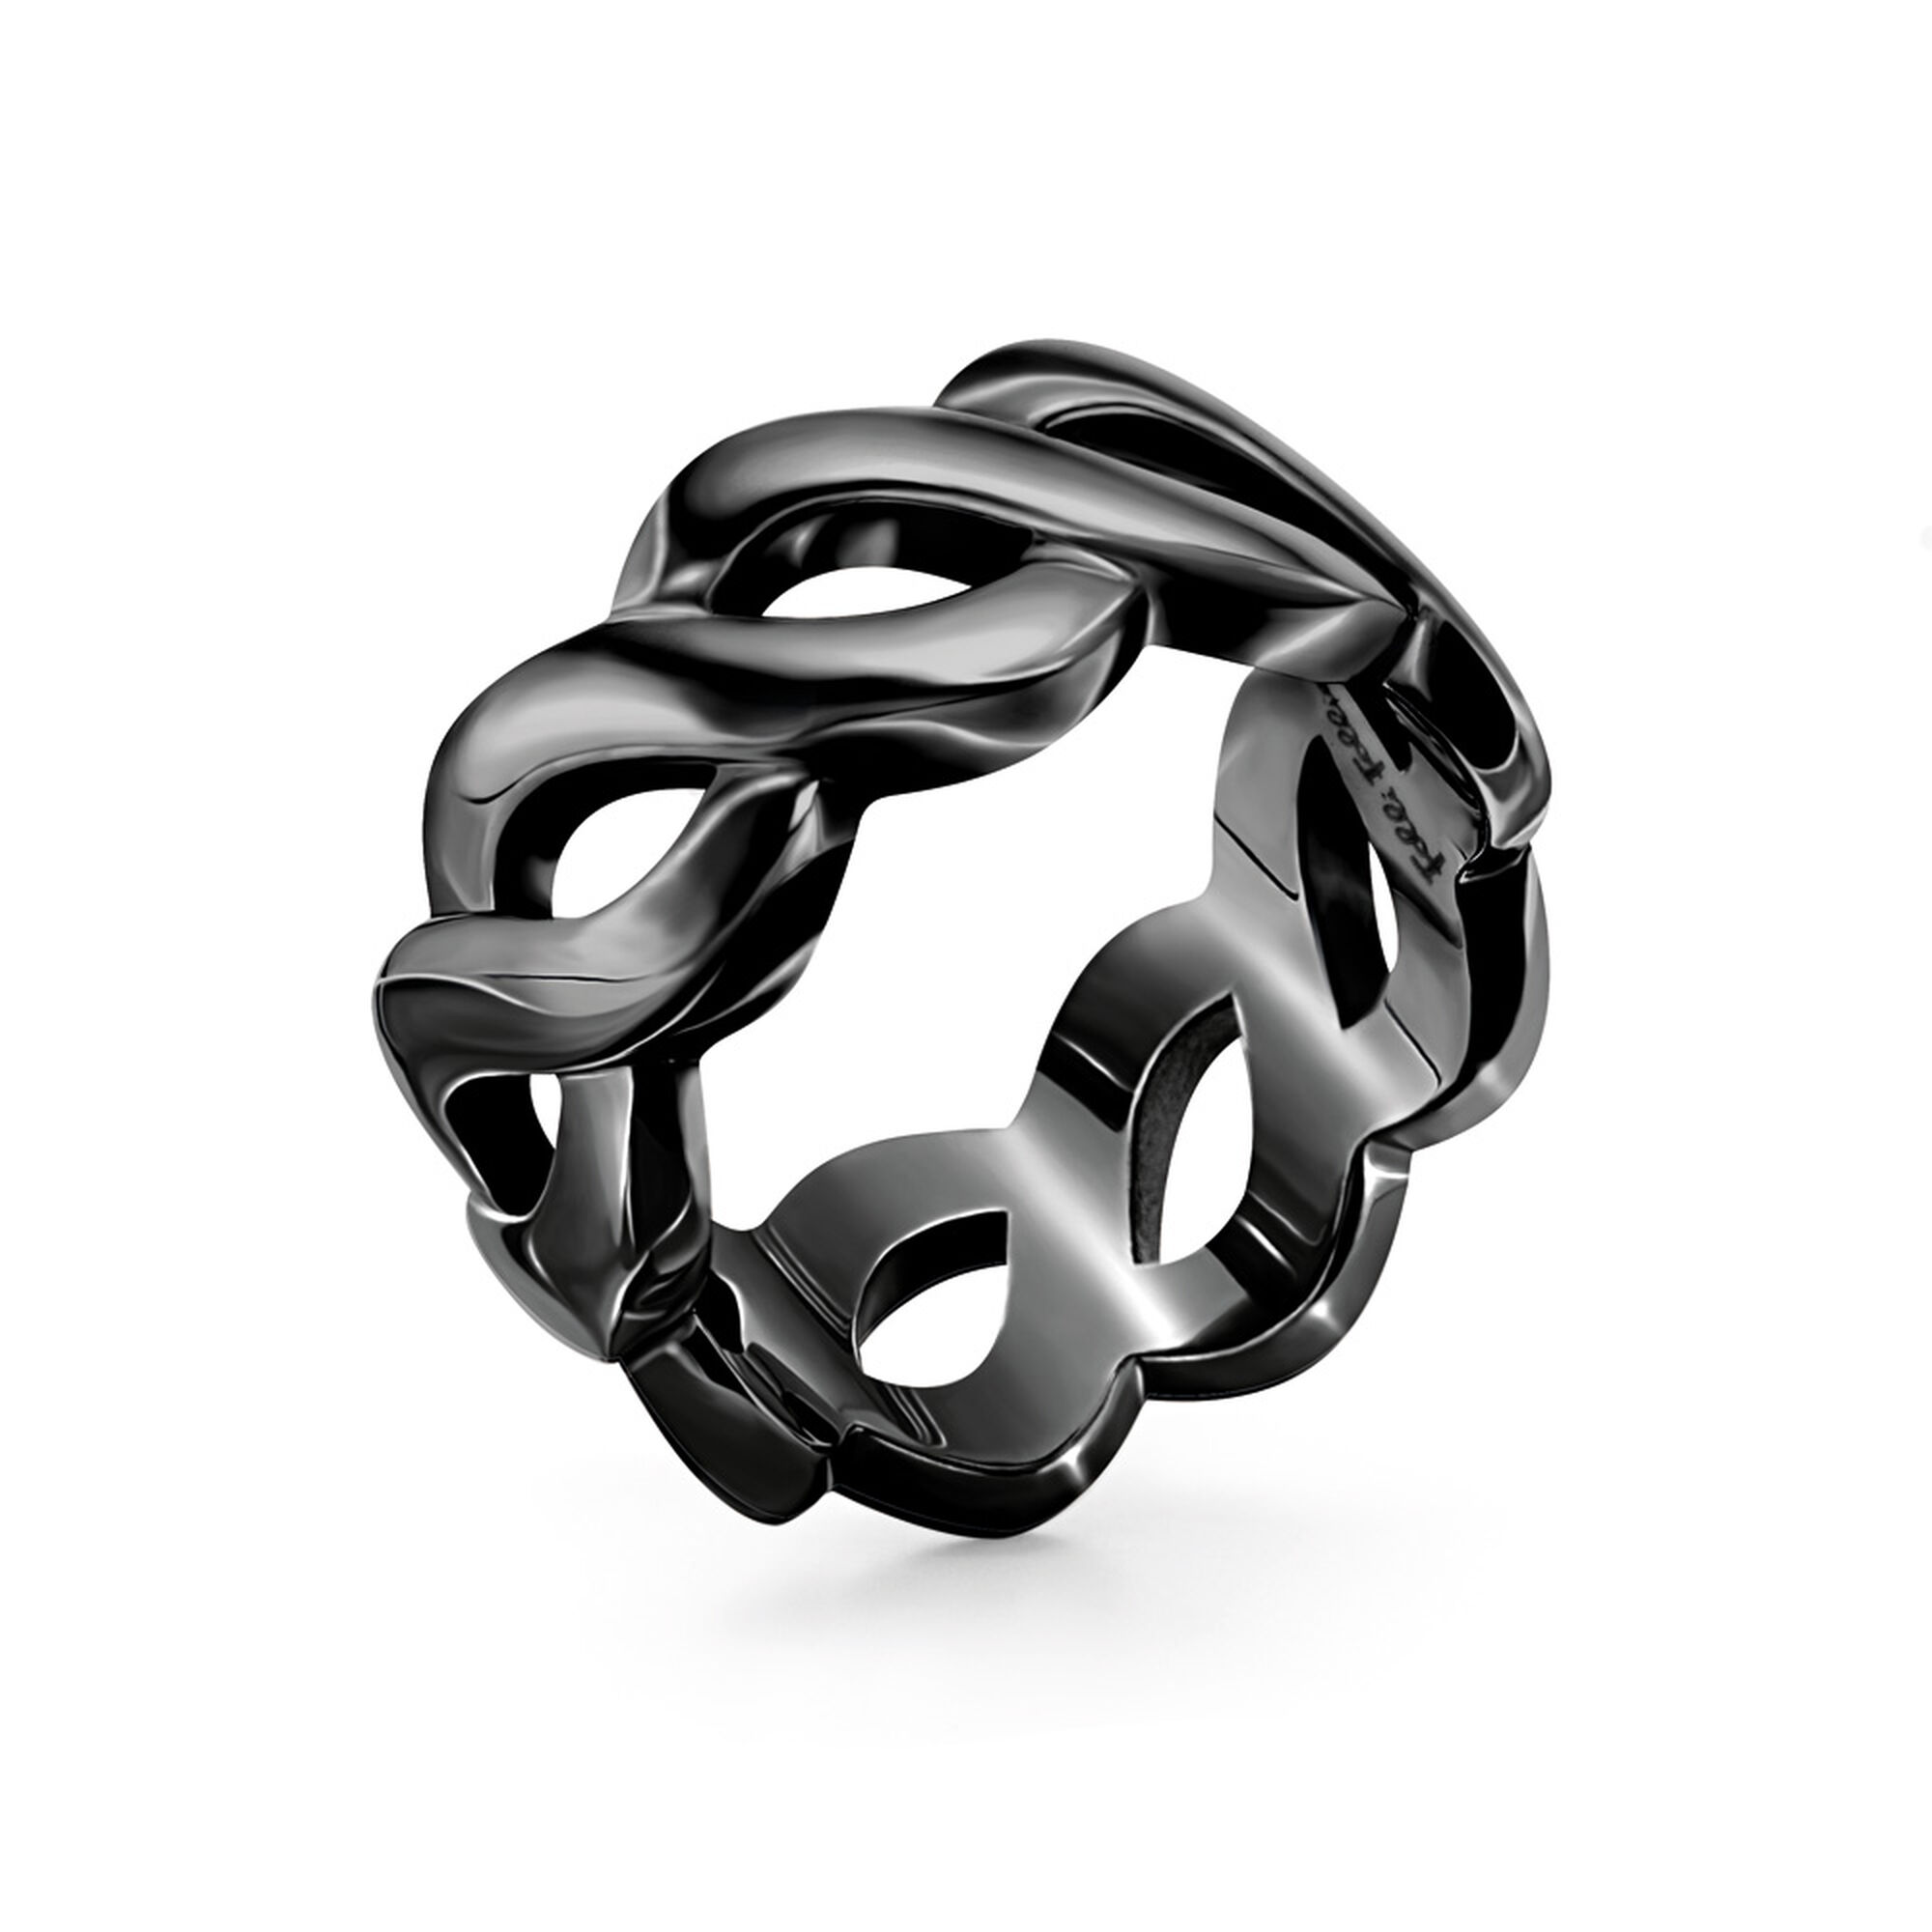 z india men rings prices in buy black b best for mens sorella band stainless at steel p ring online